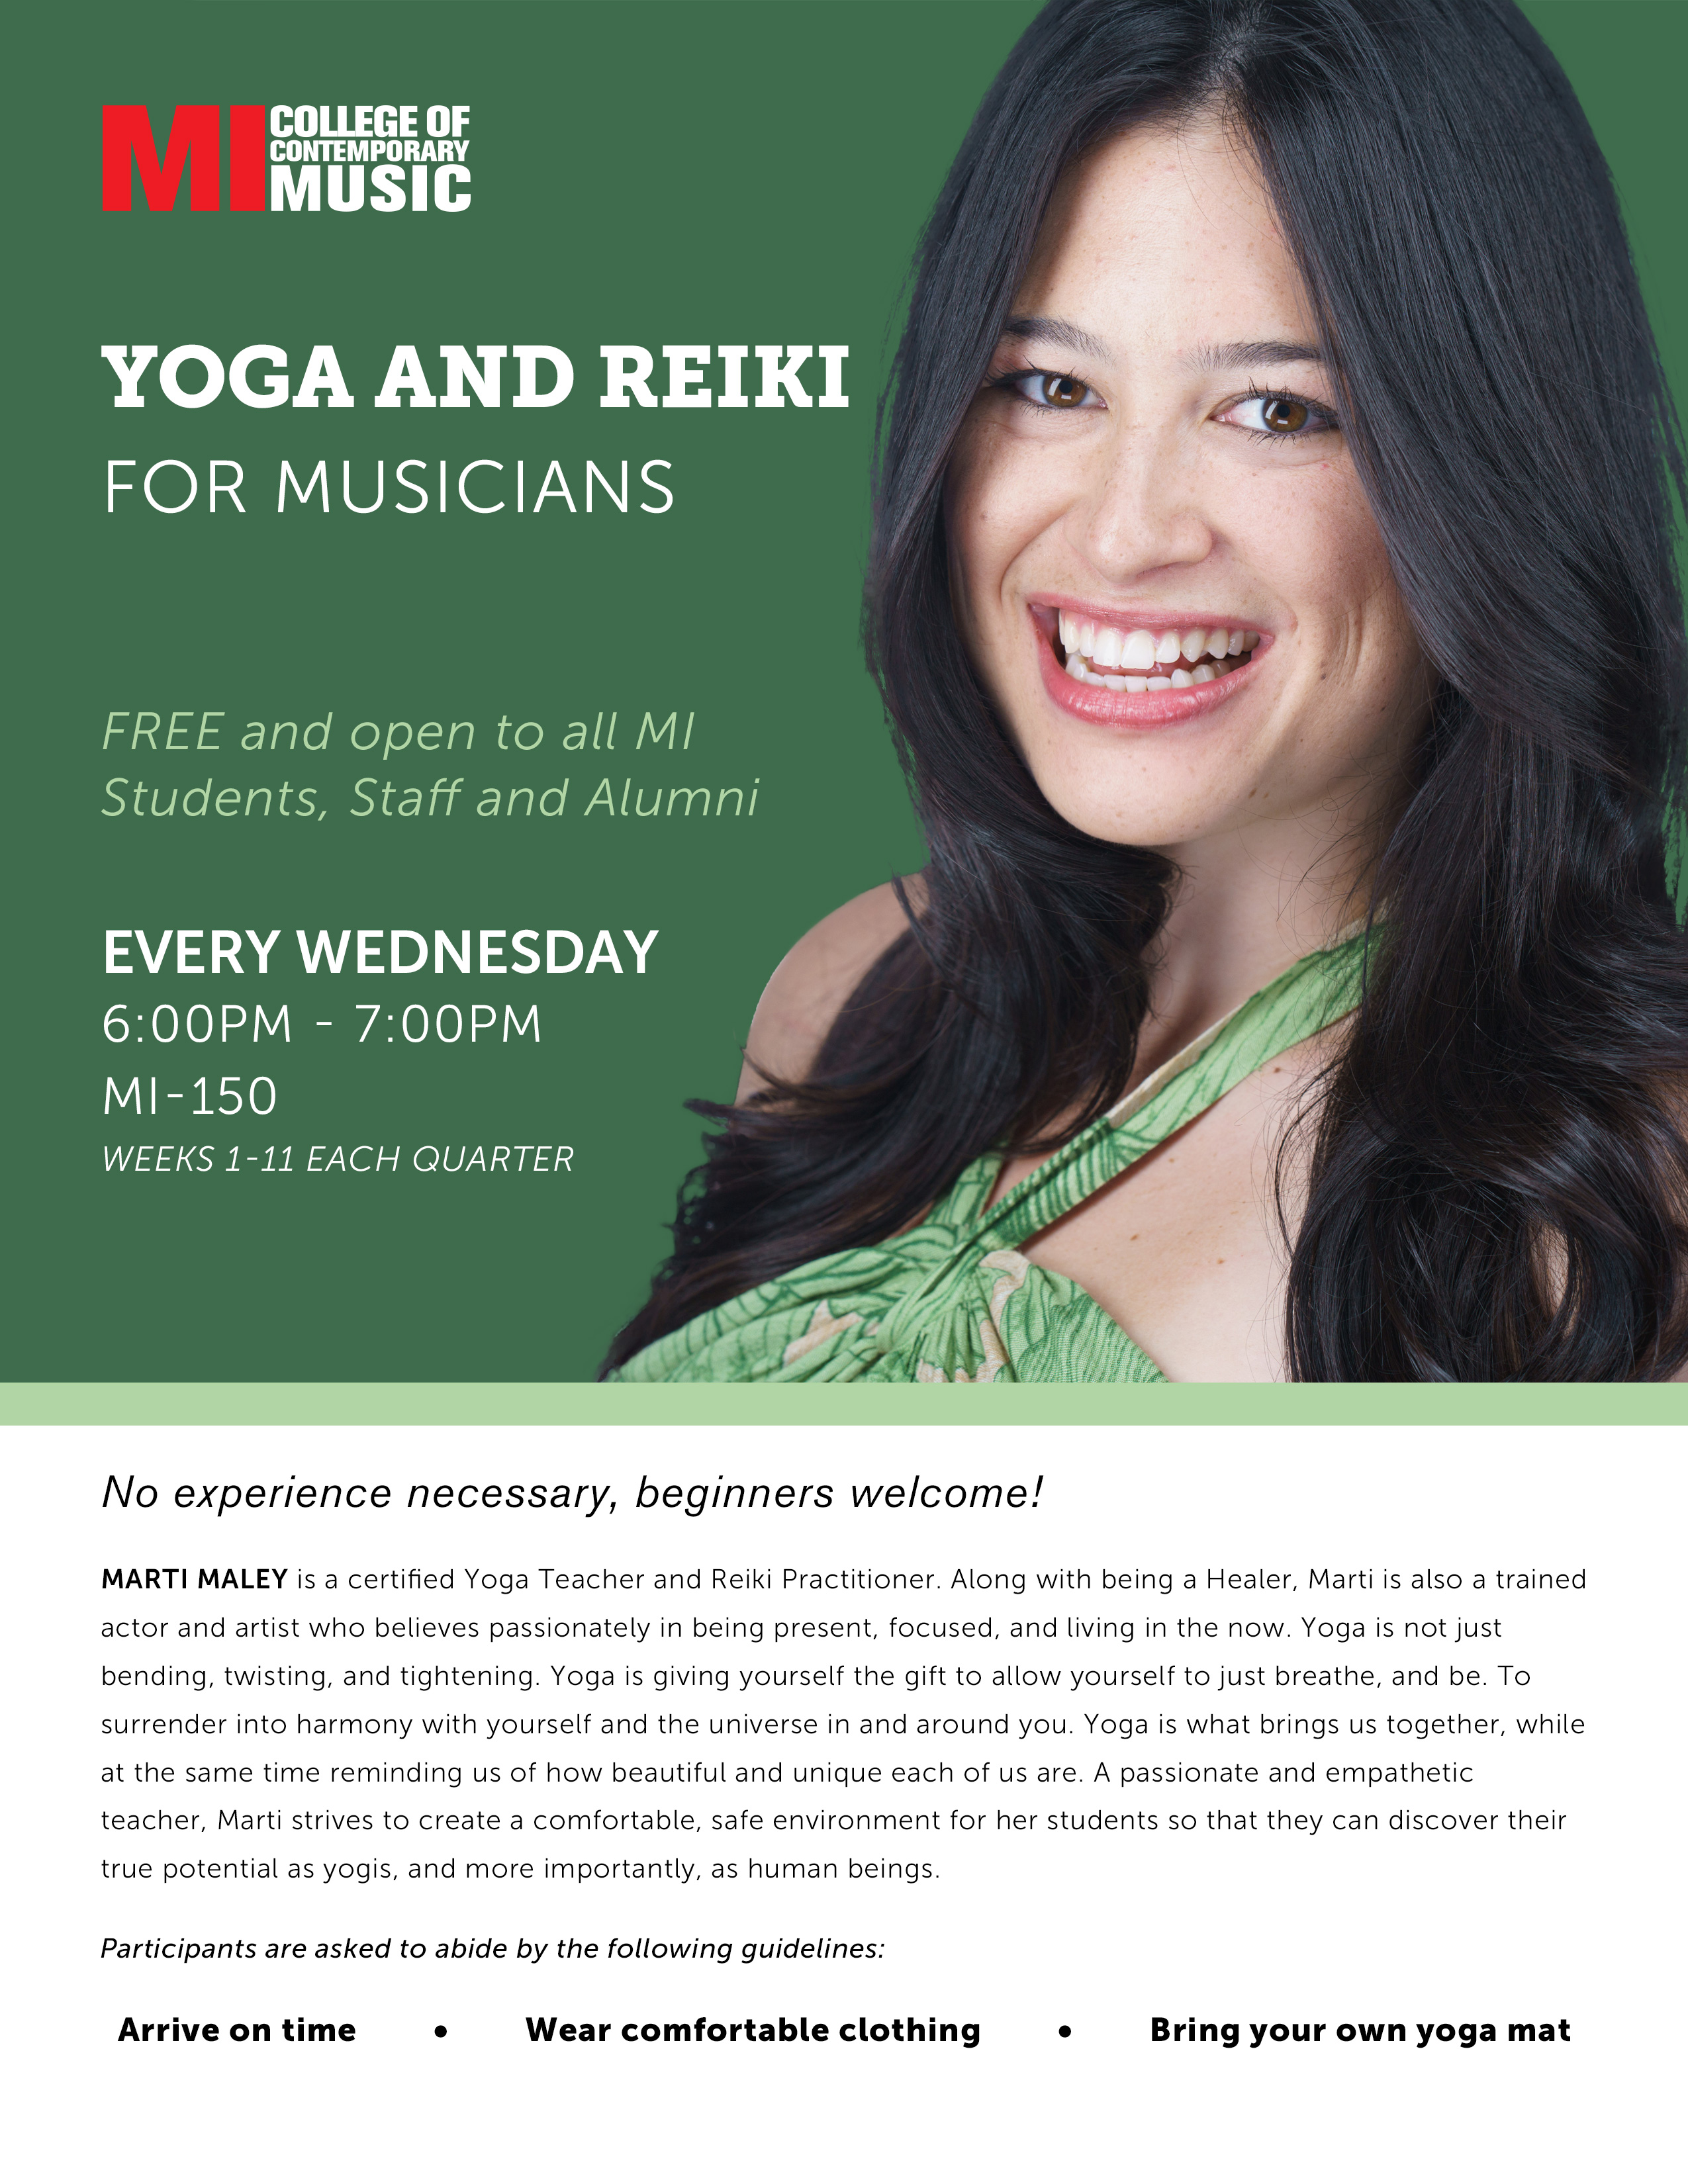 YOGA AND REIKI FOR MUSICIANS WEDNESDAY, OCTOBER 11, 2017, 6 – 7PM